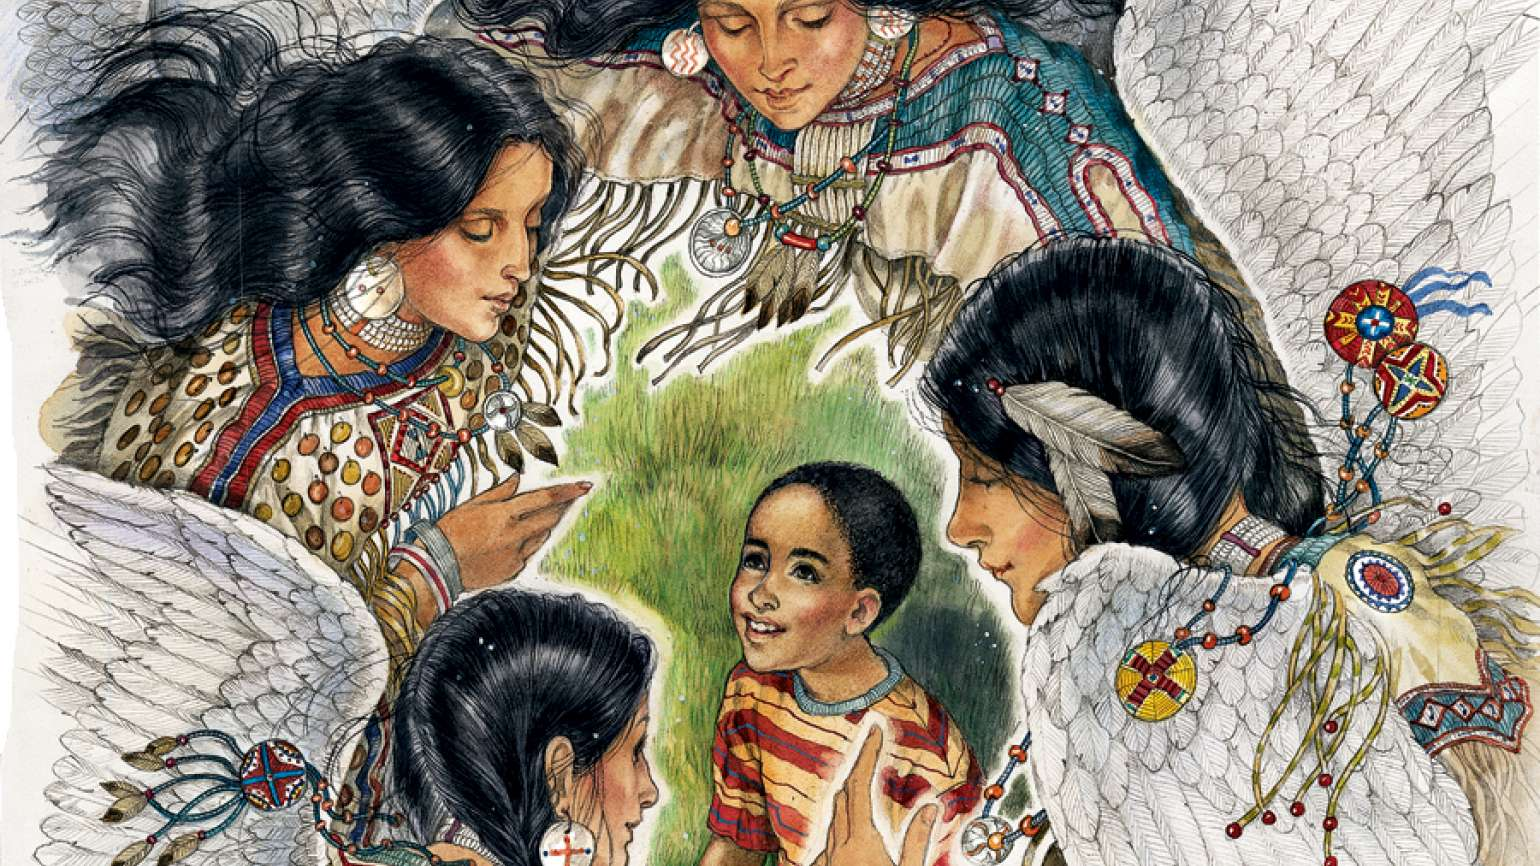 An artist's rendering of Native-American angels speaking to young Kenneth